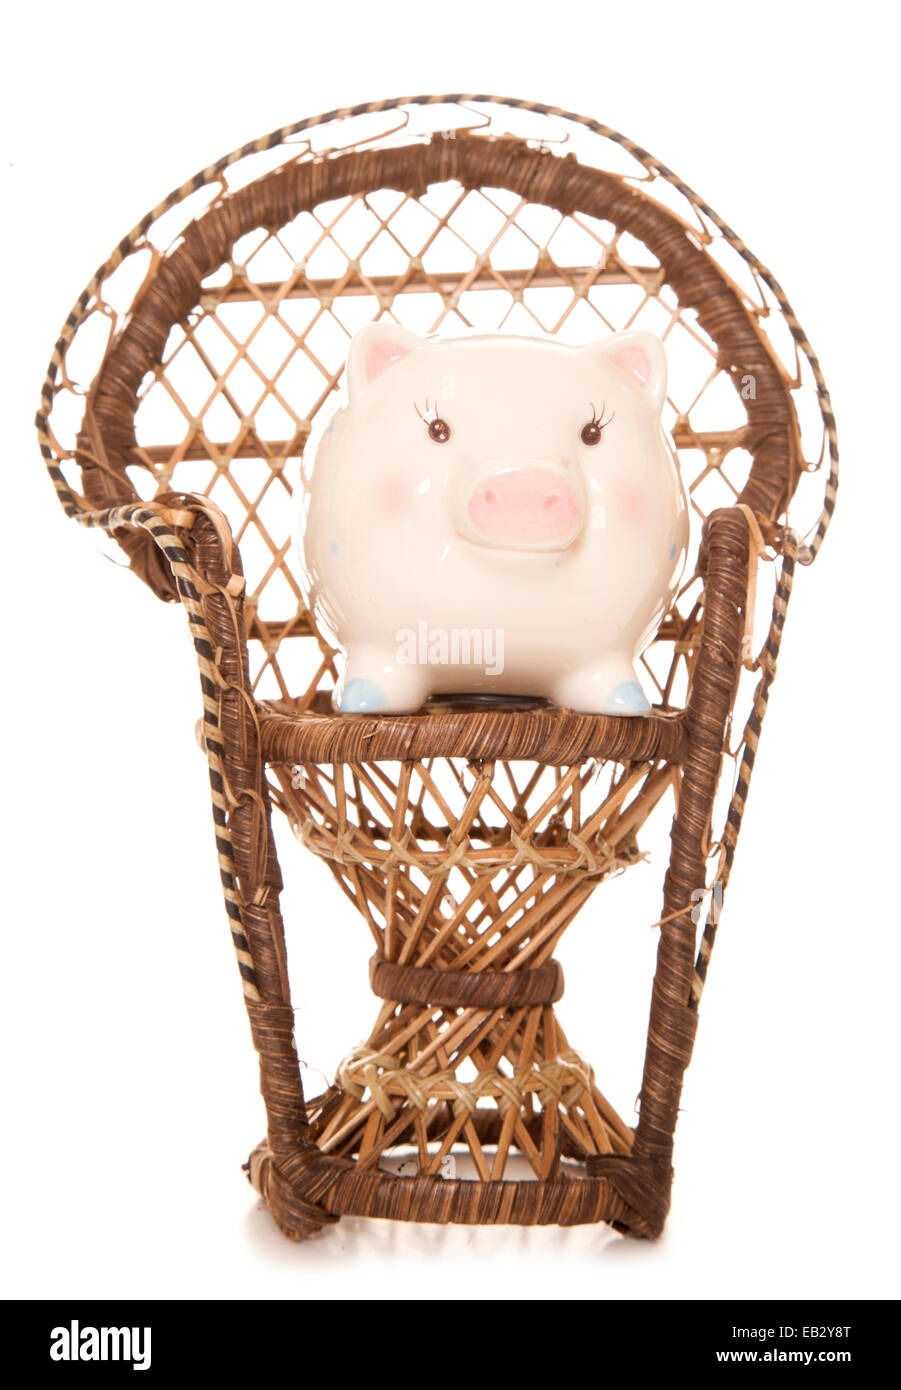 saving for your children piggybank cutout - Stock Image